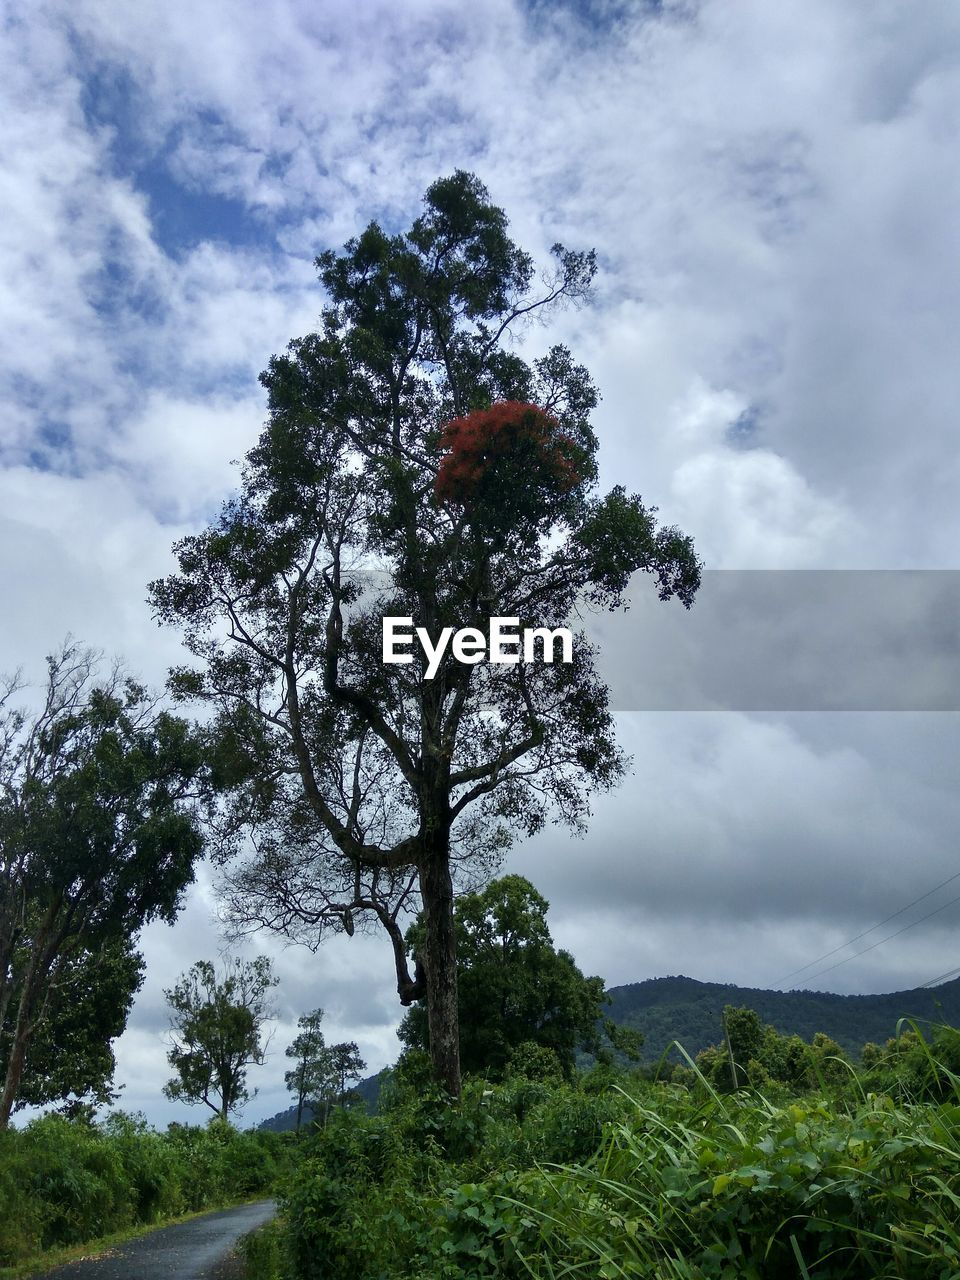 tree, cloud - sky, sky, nature, growth, day, outdoors, beauty in nature, no people, tranquility, landscape, scenics, tranquil scene, low angle view, mountain, plant